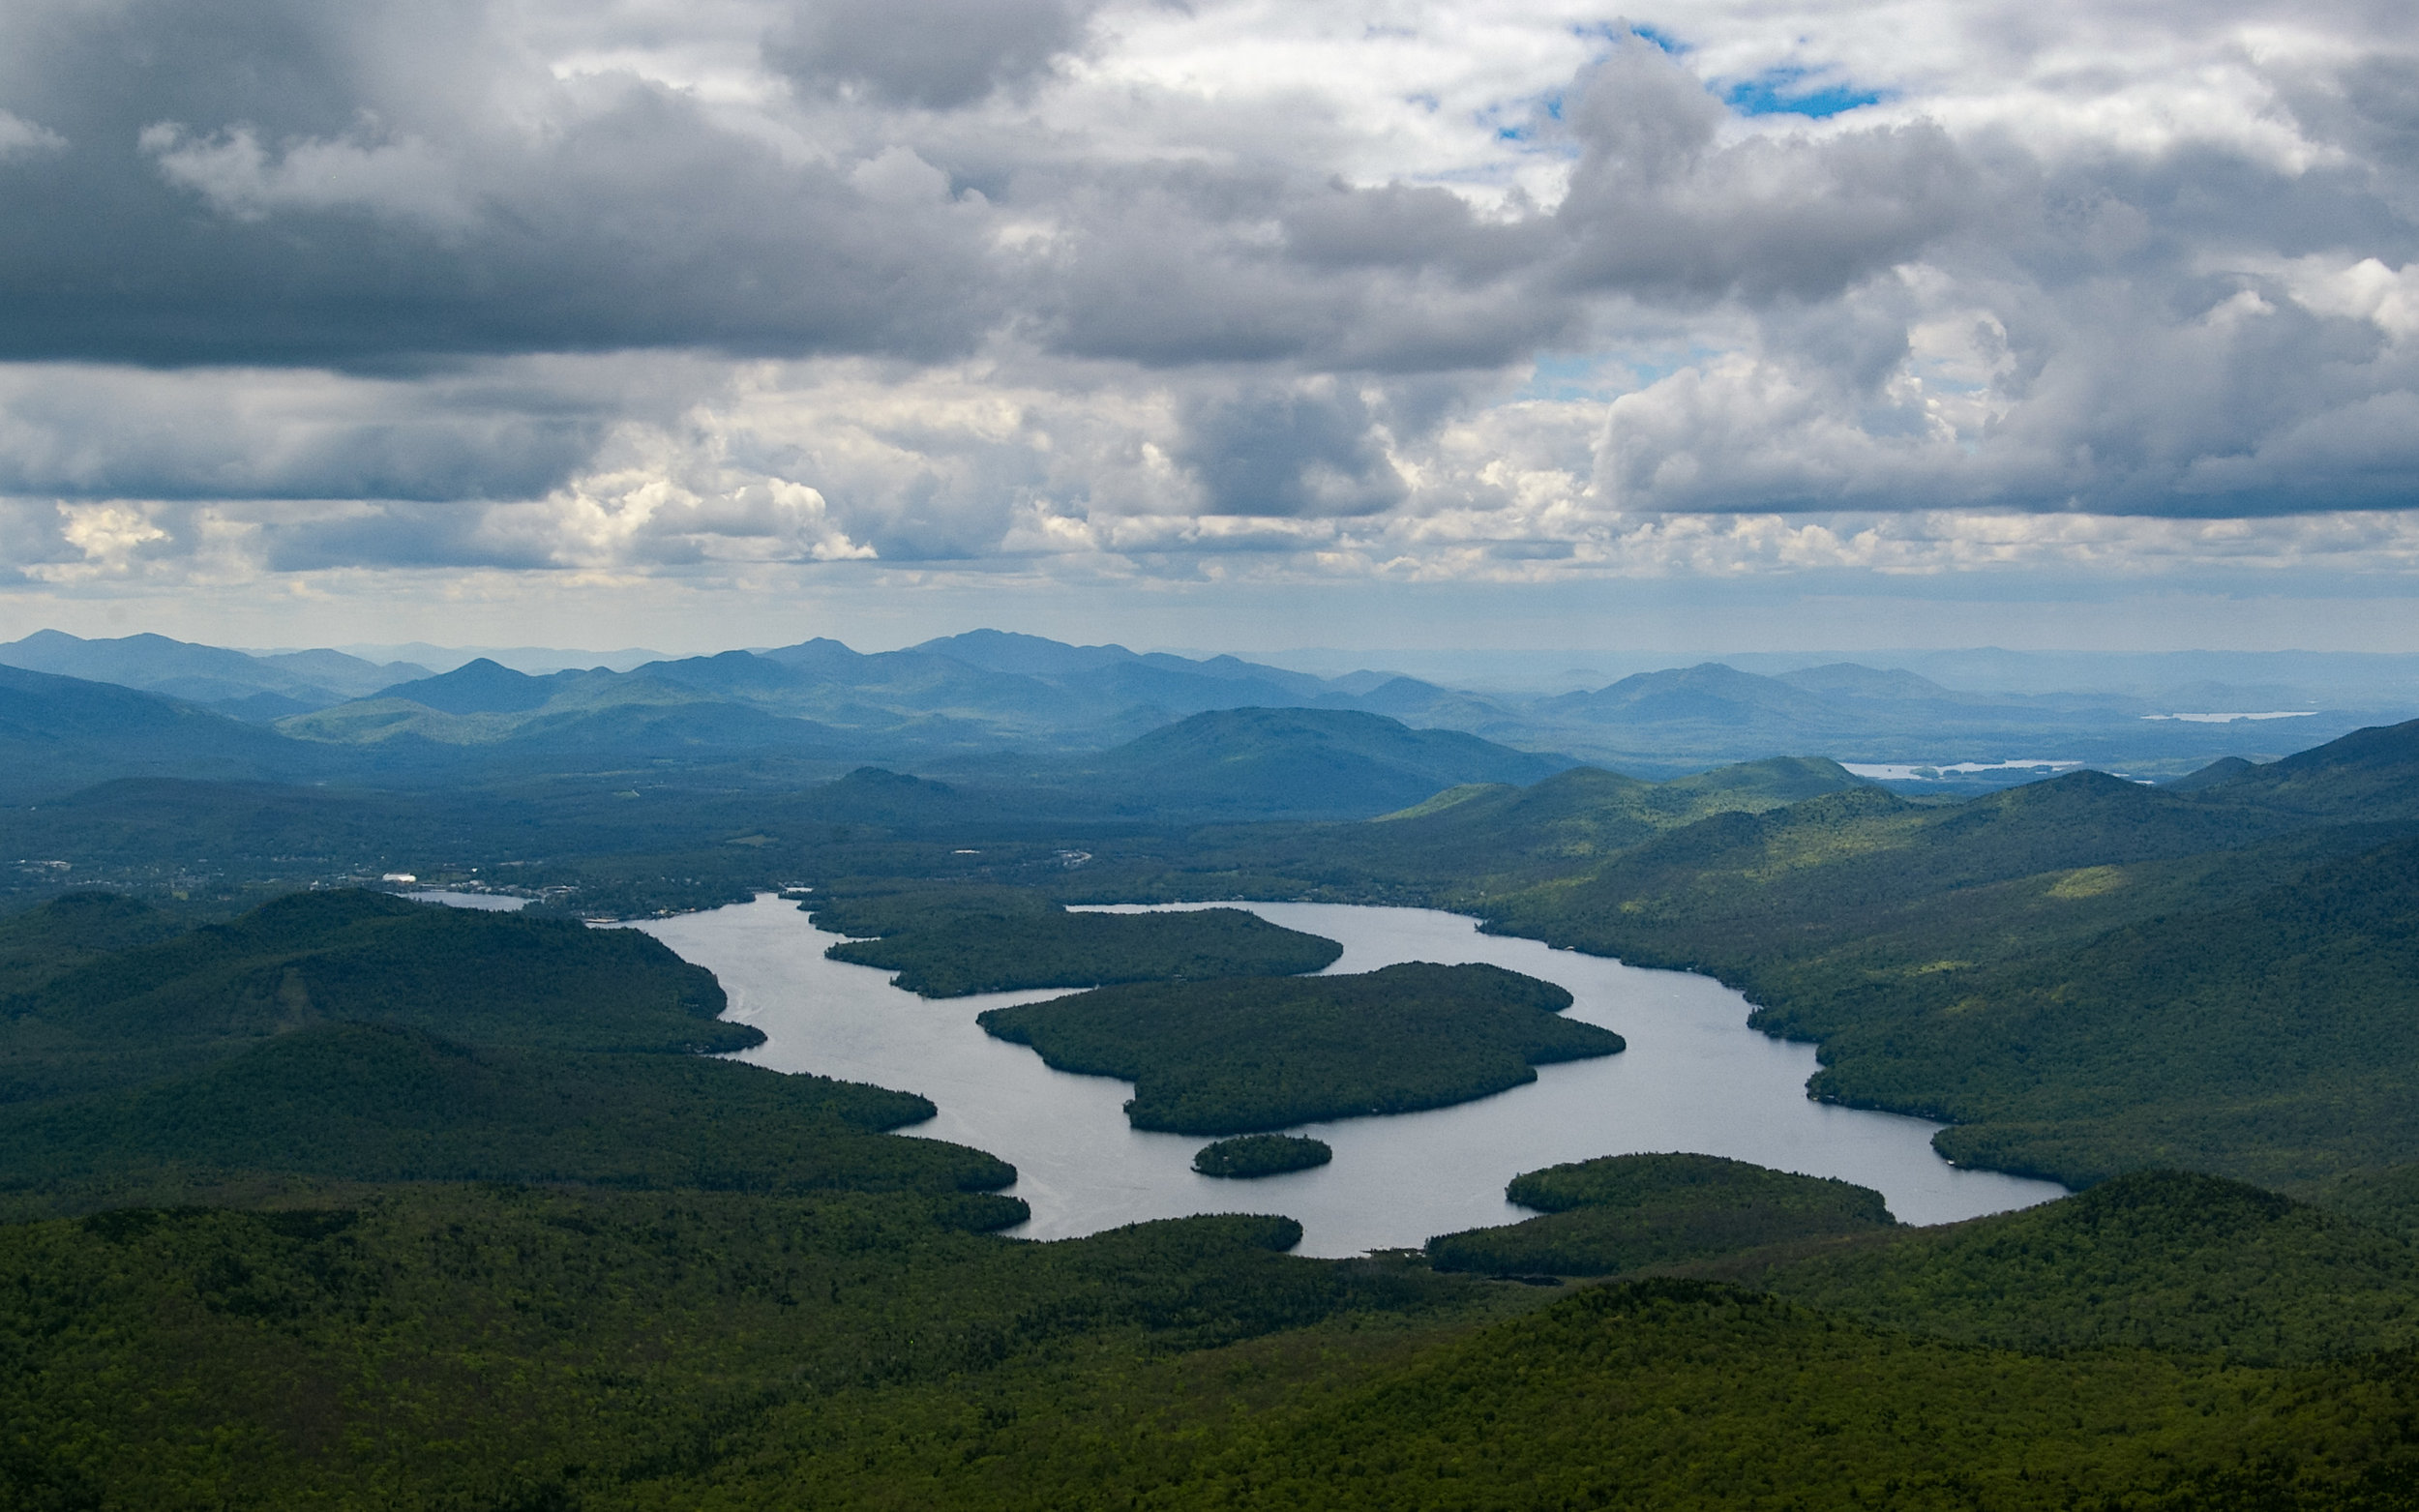 Visit the real Lake Placid